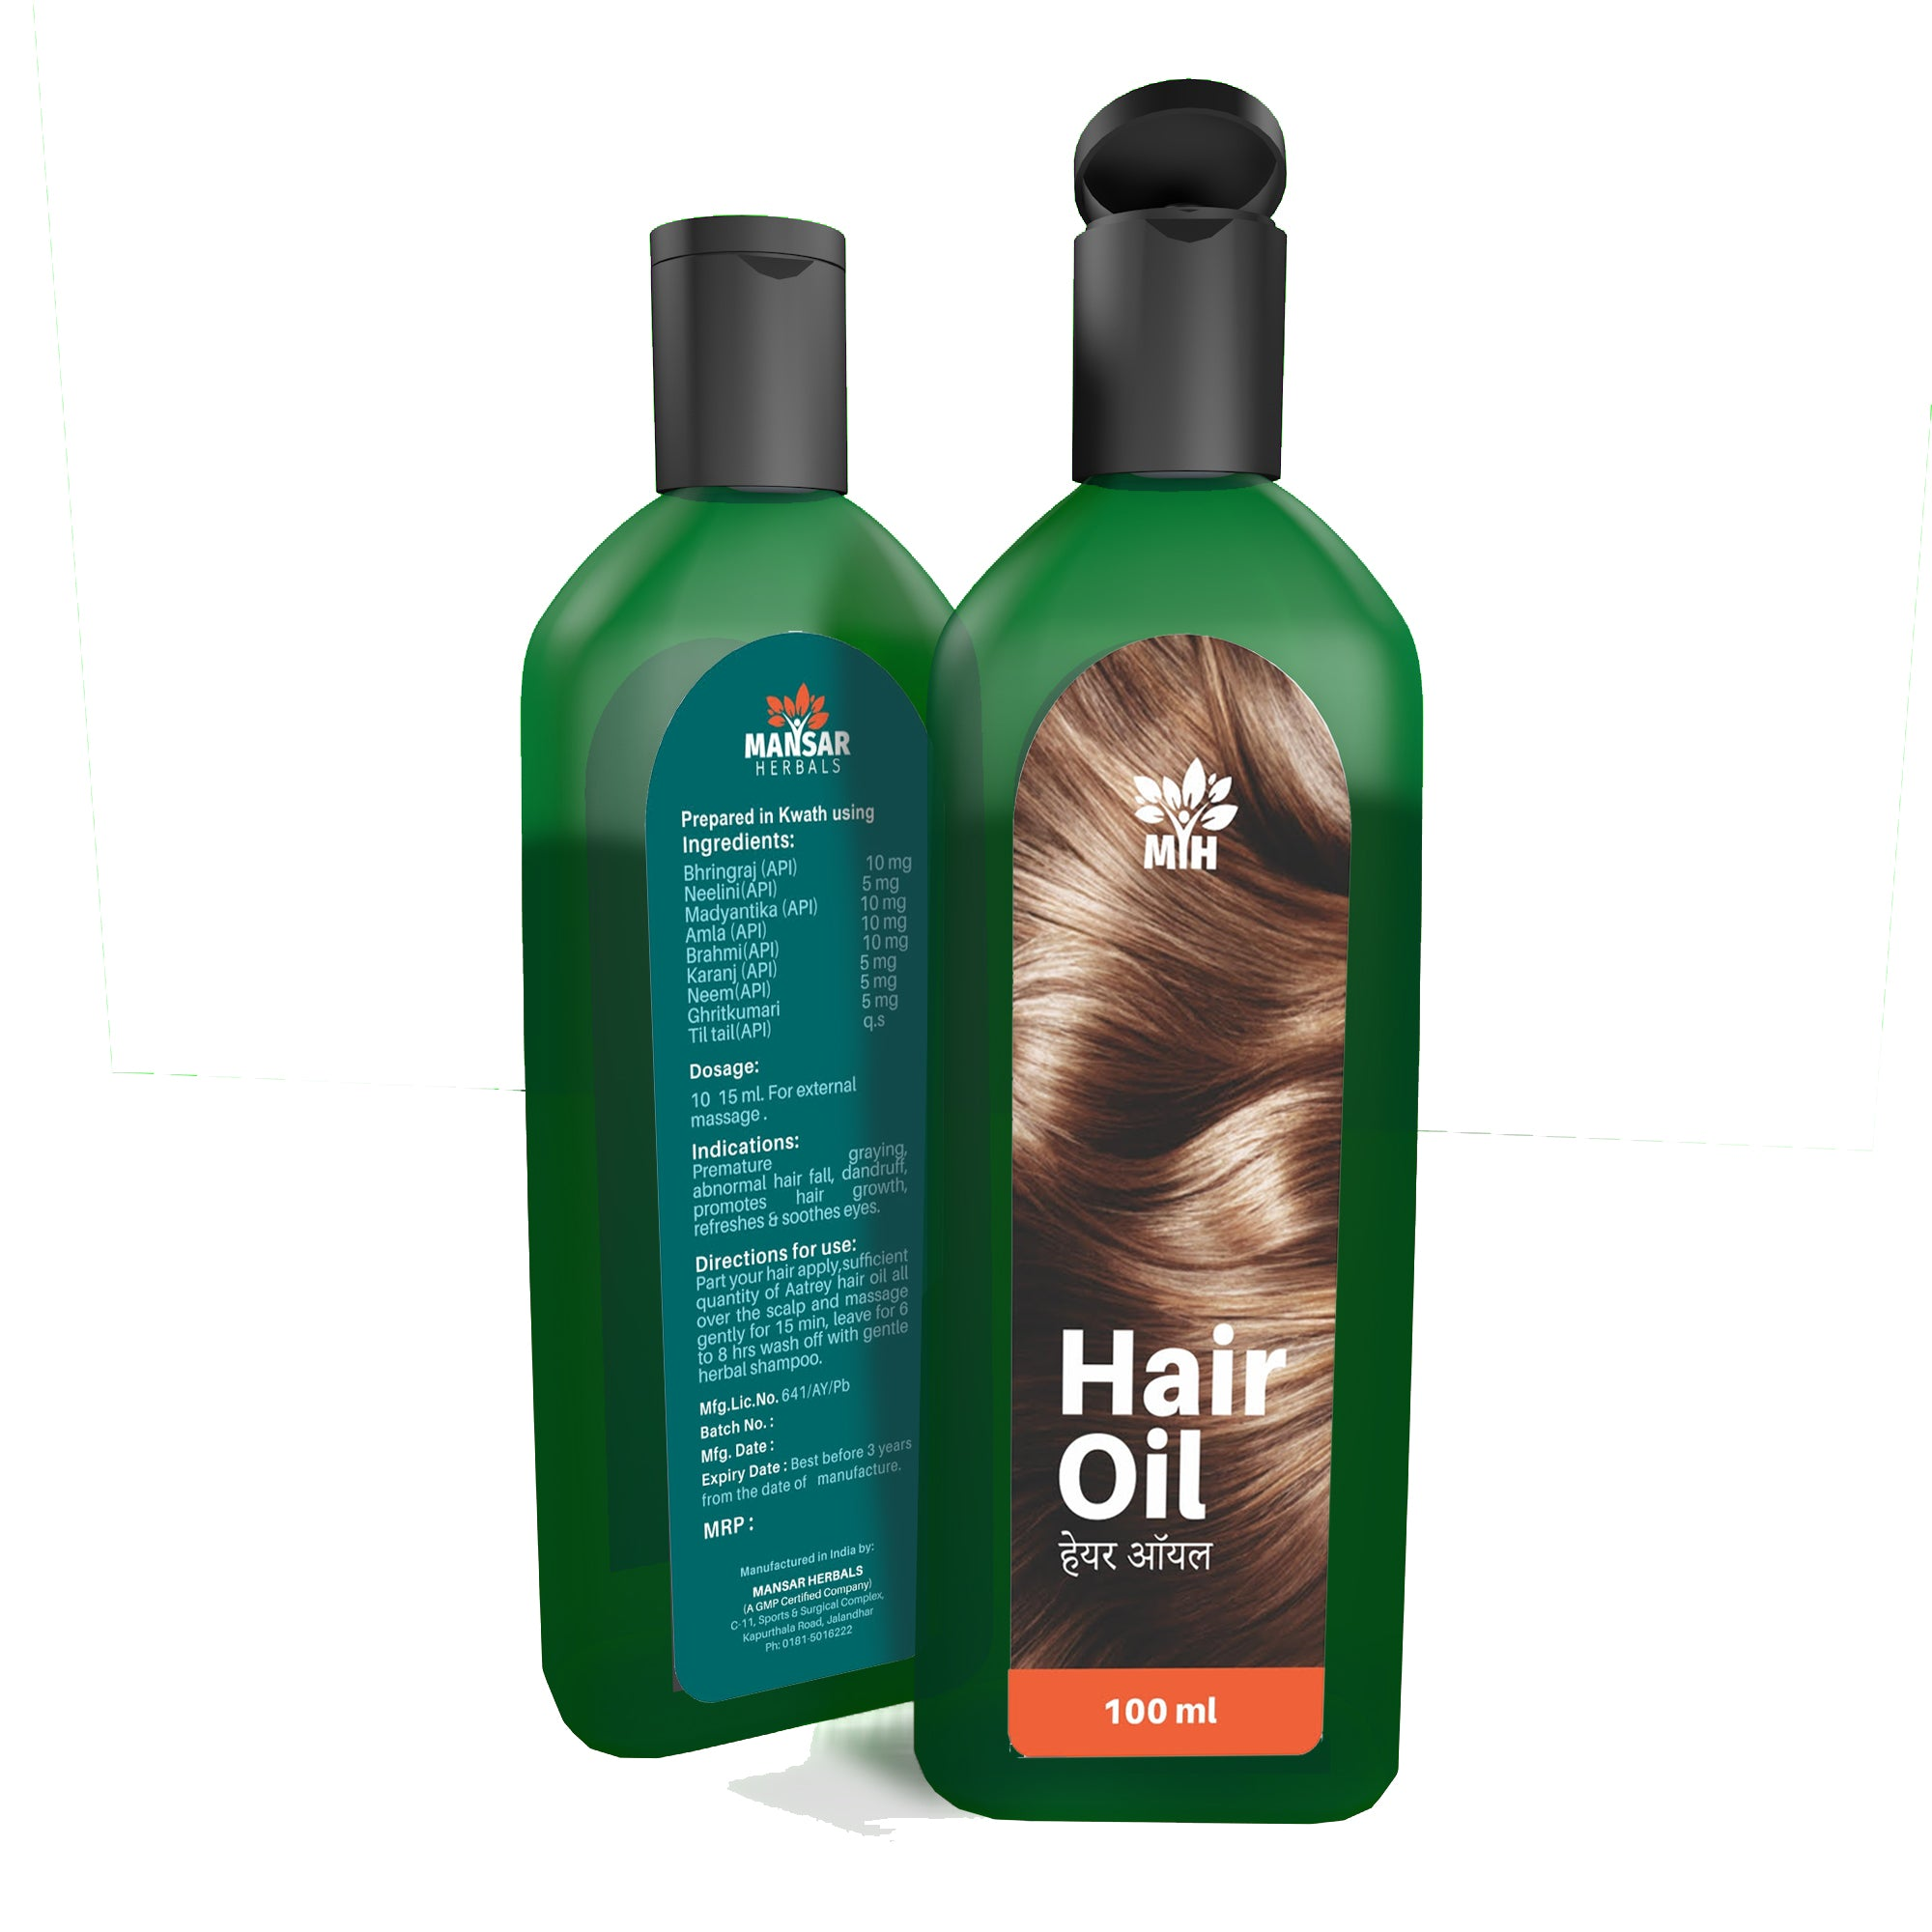 Mansar Herbals Hair Oil is a herbal hair oil that provides nourishment to scalp and hair follicles and prevents premature greying, excessive hairfall and dandruff. It Strenghtens the hair and makes them healthy, shiny and strong.